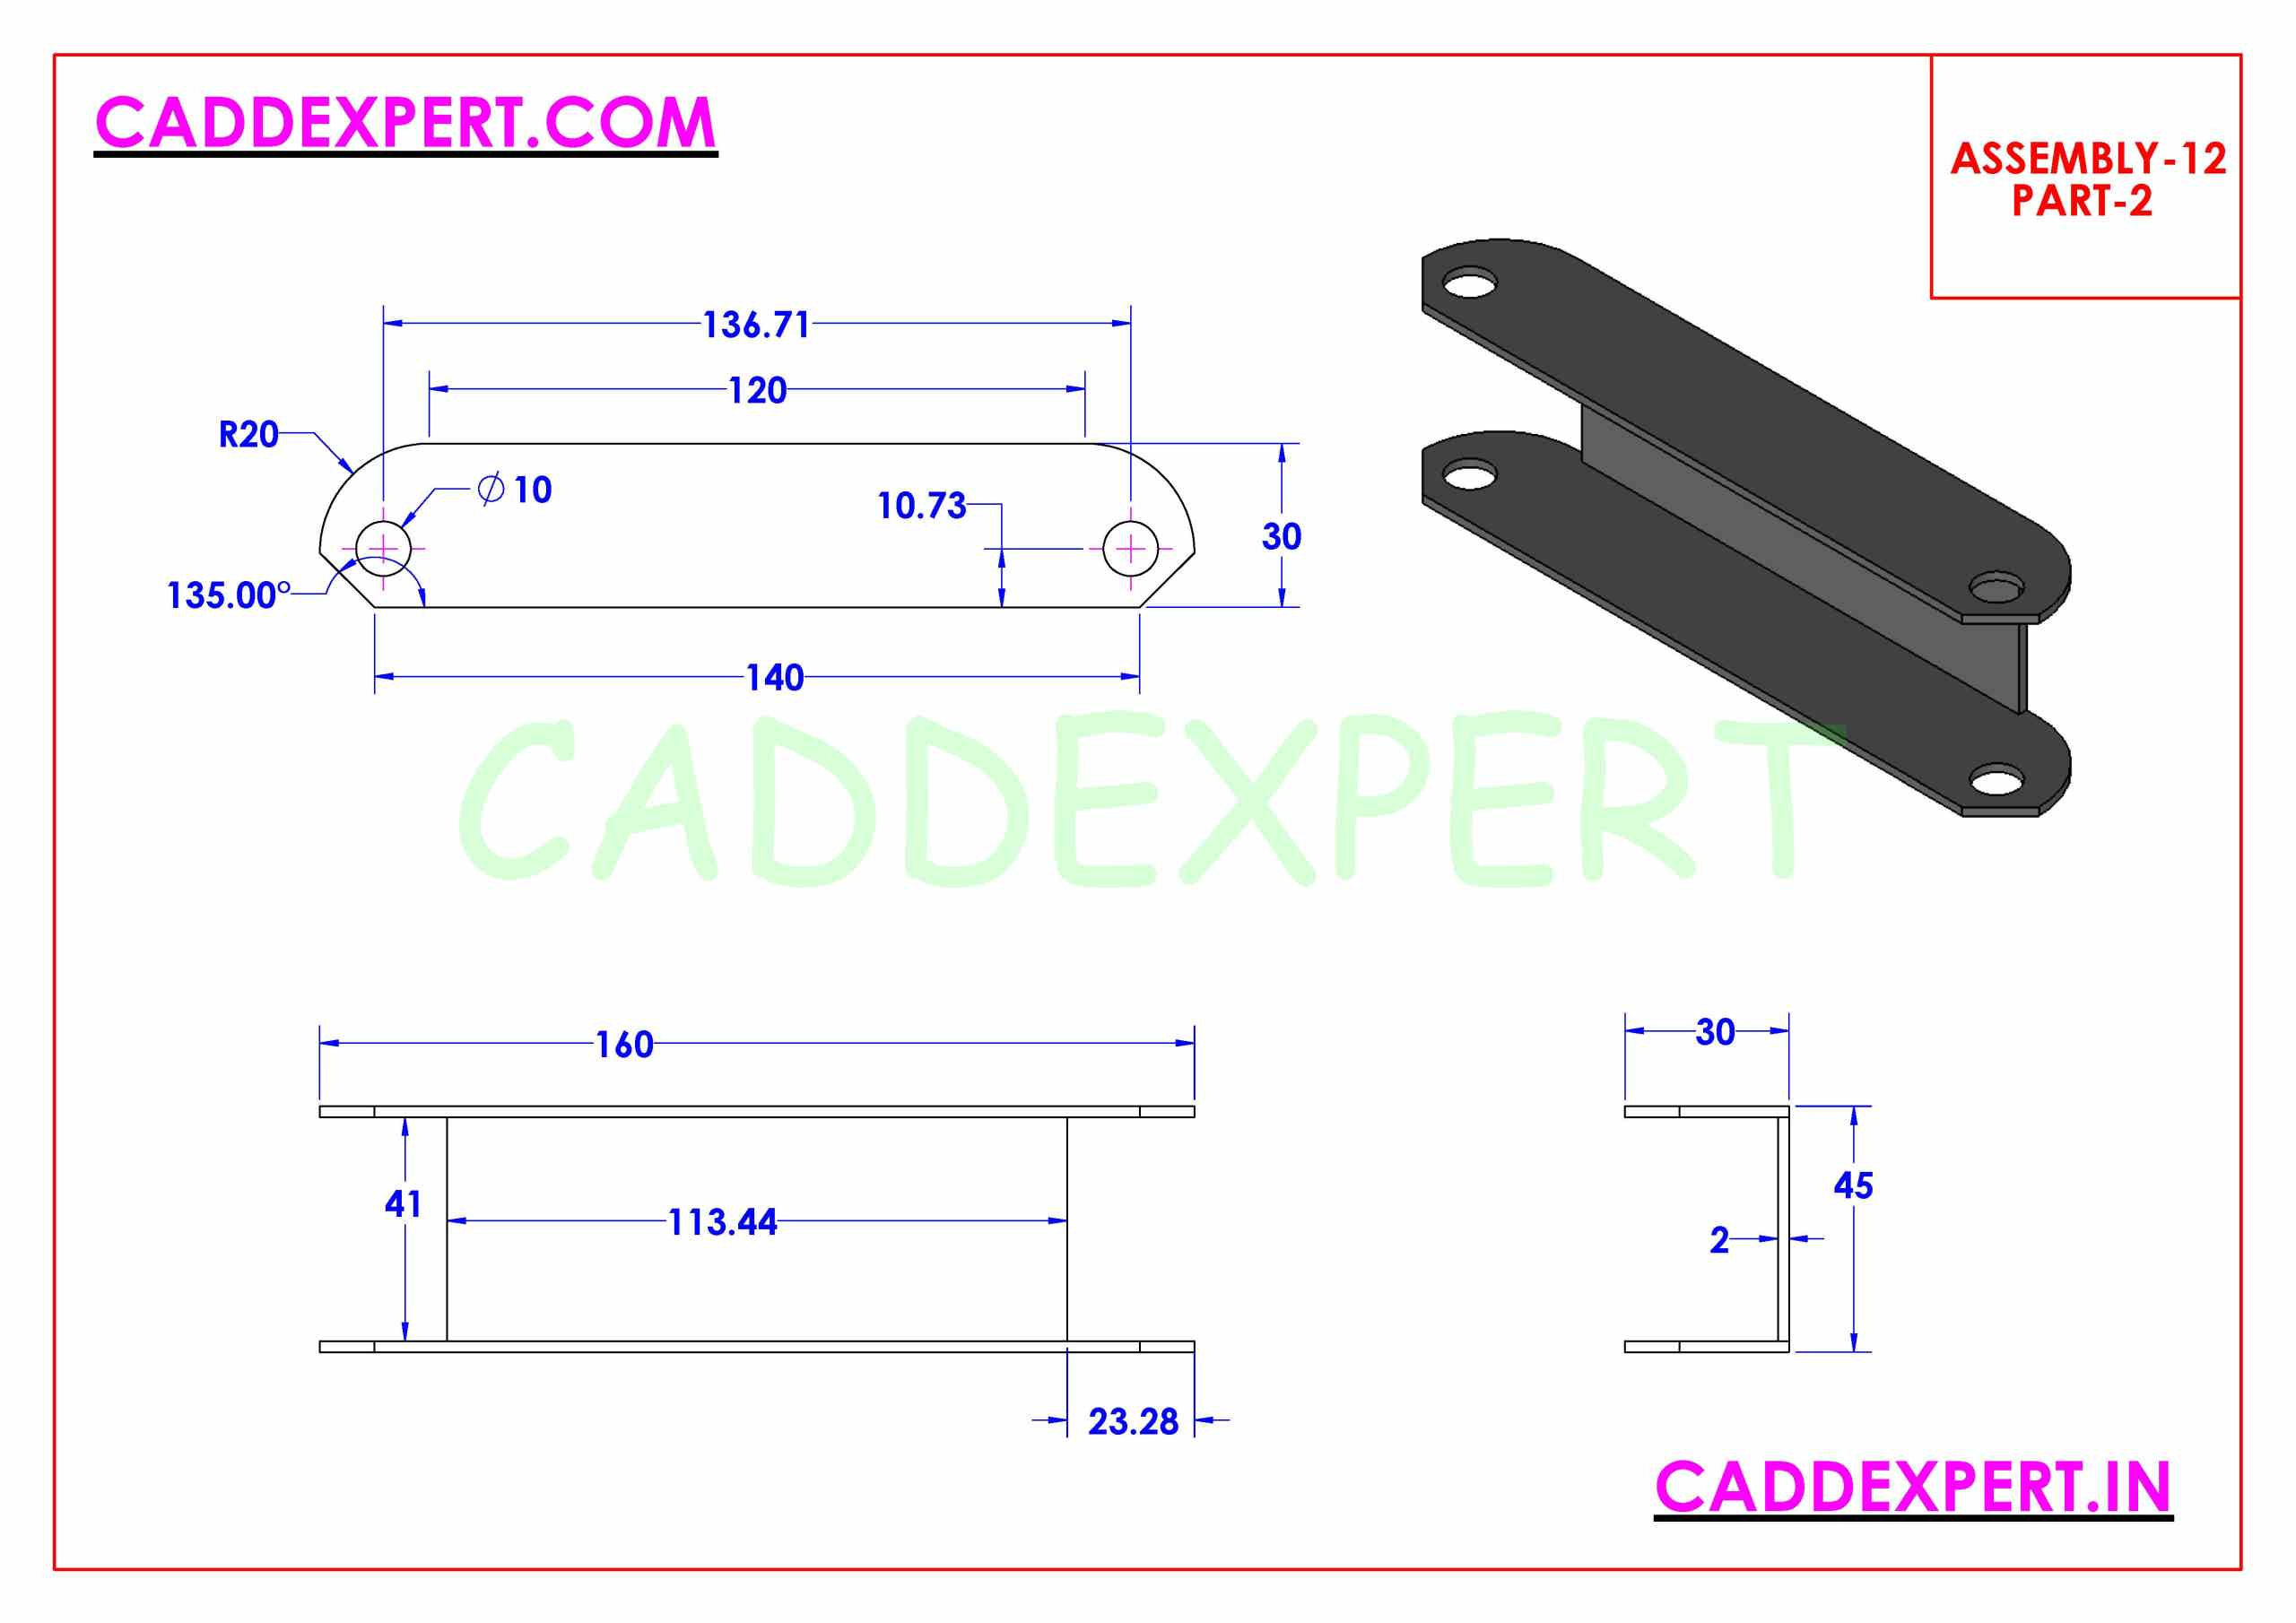 SOLIDWORKS ASSEMBLY JACK SCREW PART - 2